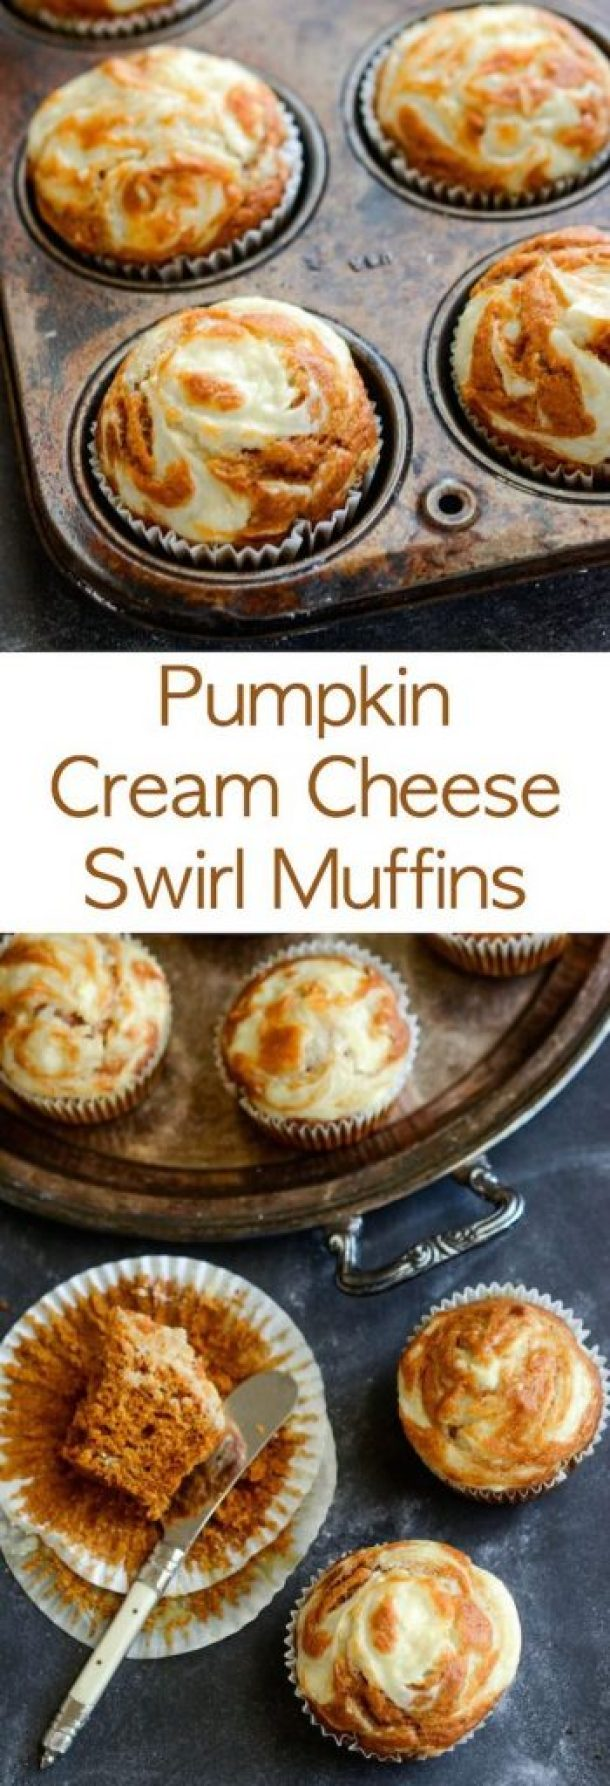 Pumpkin Cream Cheese Swirl Muffins Recipe | The Novice Chef